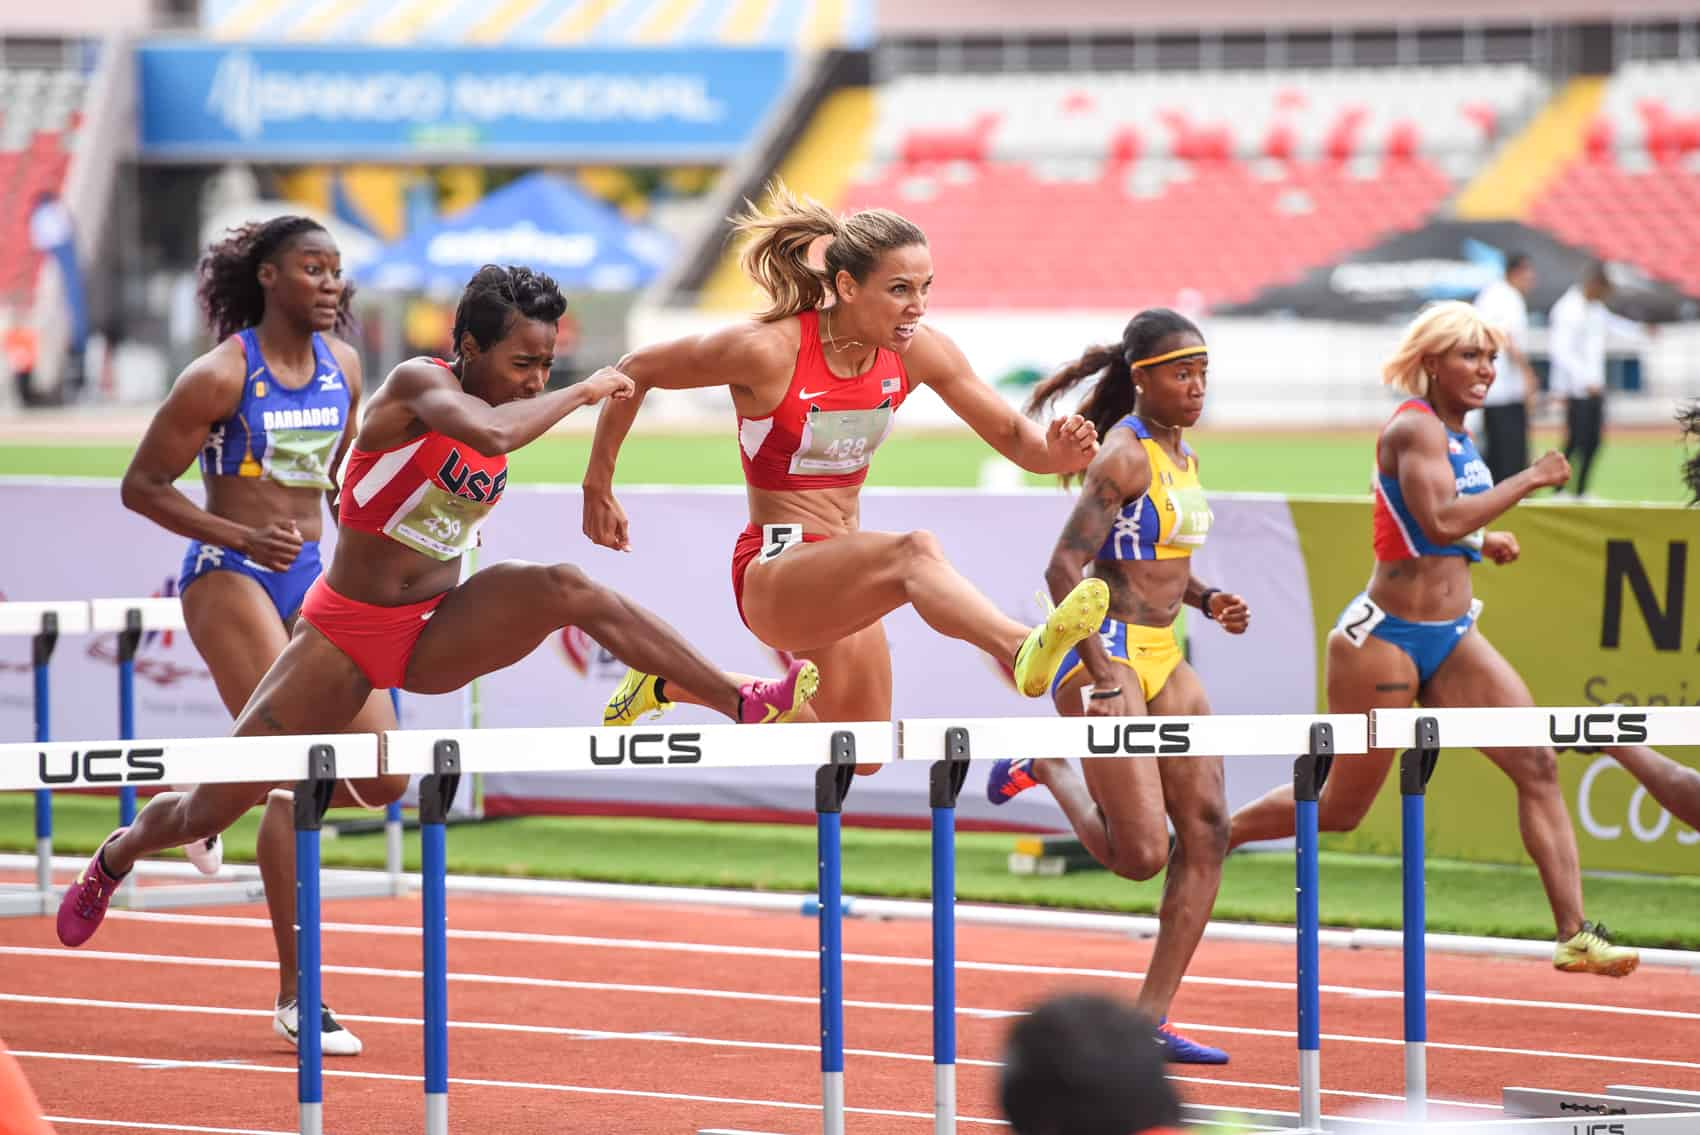 Track star Lolo Jones won the women's 110 meter hurdles at the NACAC Championships in San José on Saturday with a blazing run of 12.63 seconds.